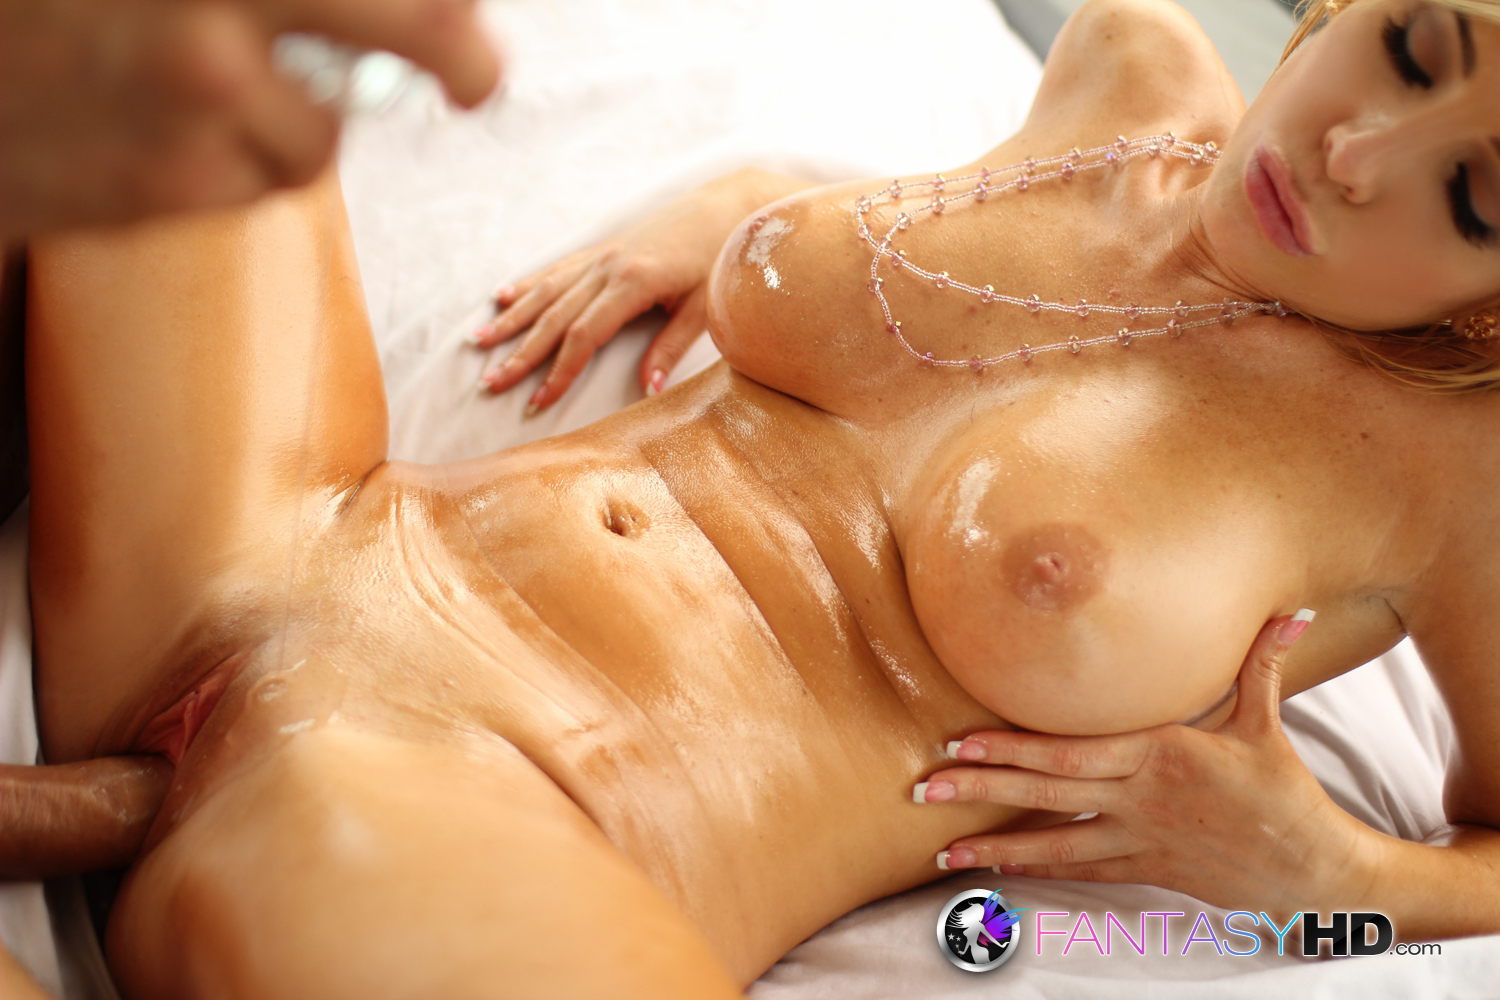 image Chloe love receives an internal cumshot